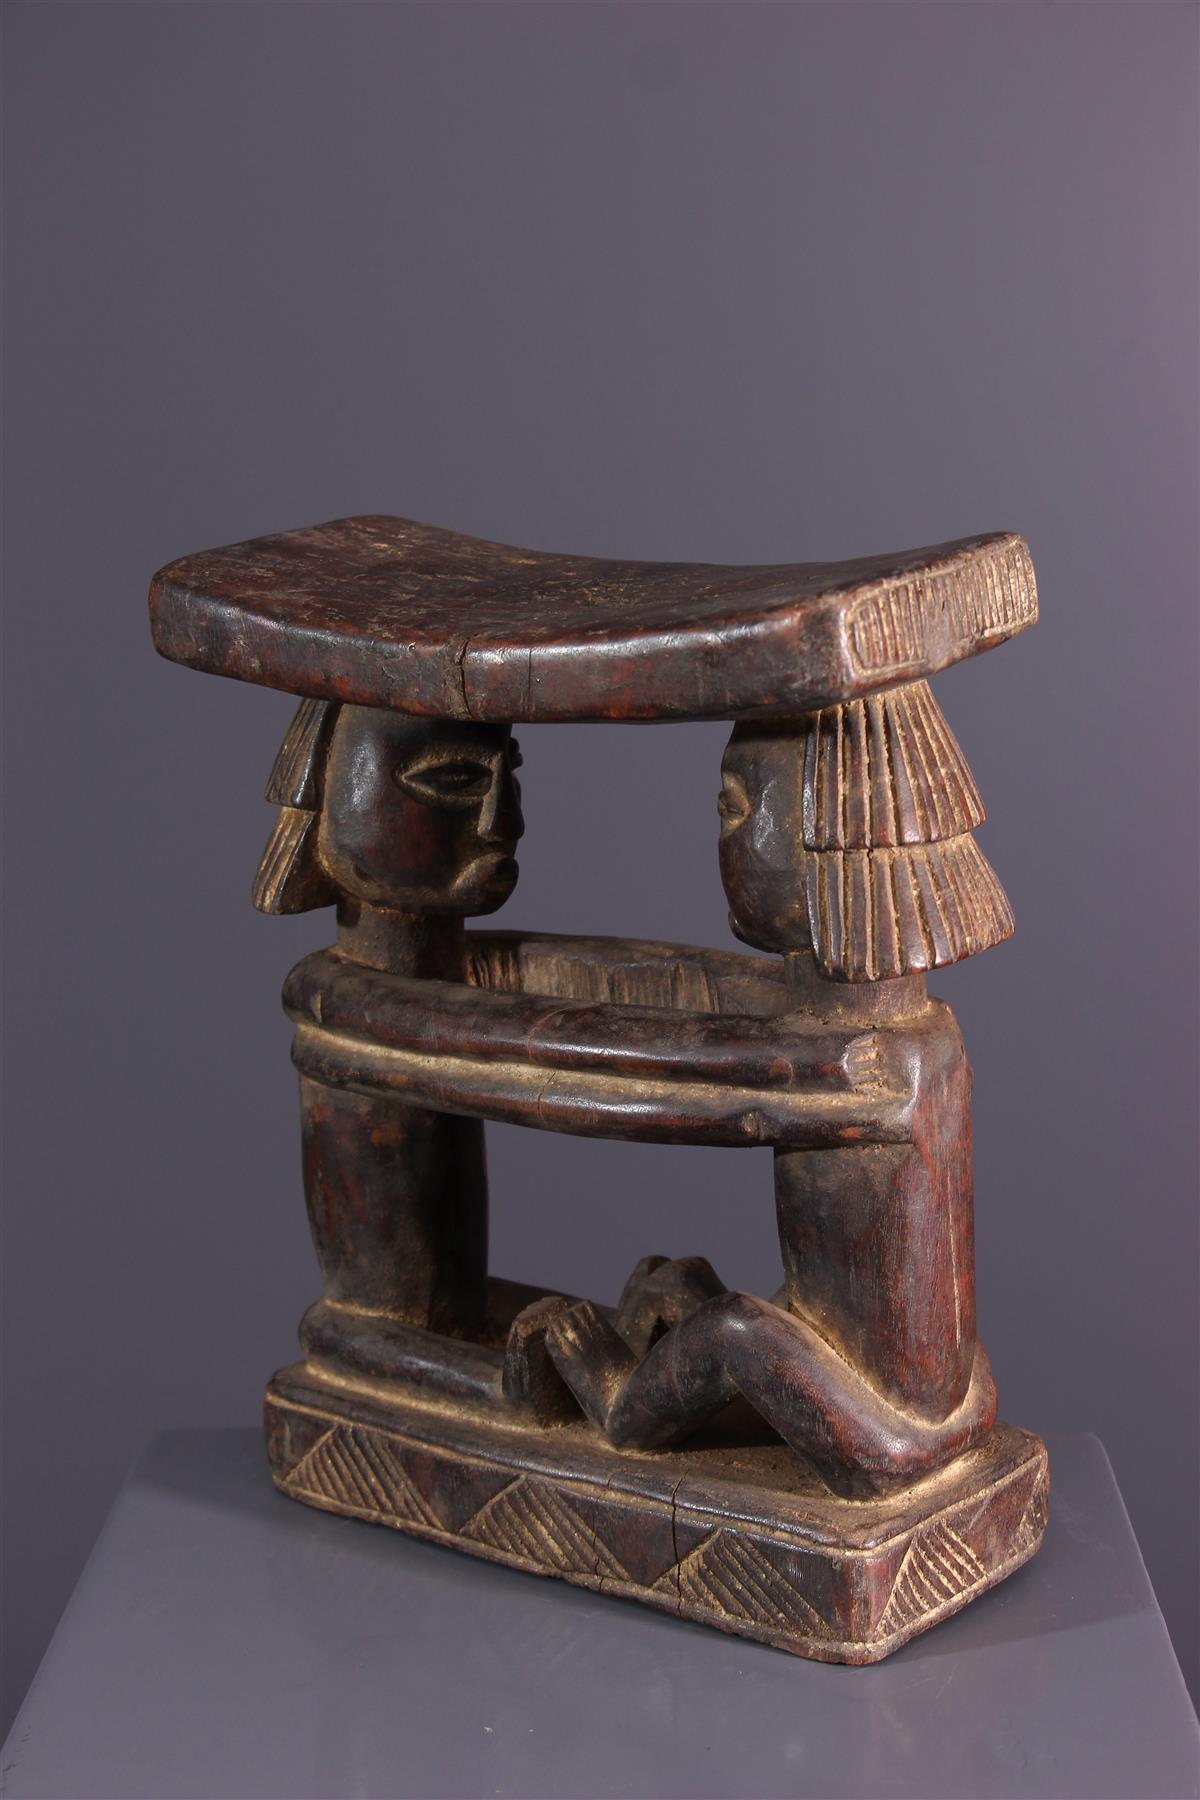 Luba neck press - African art